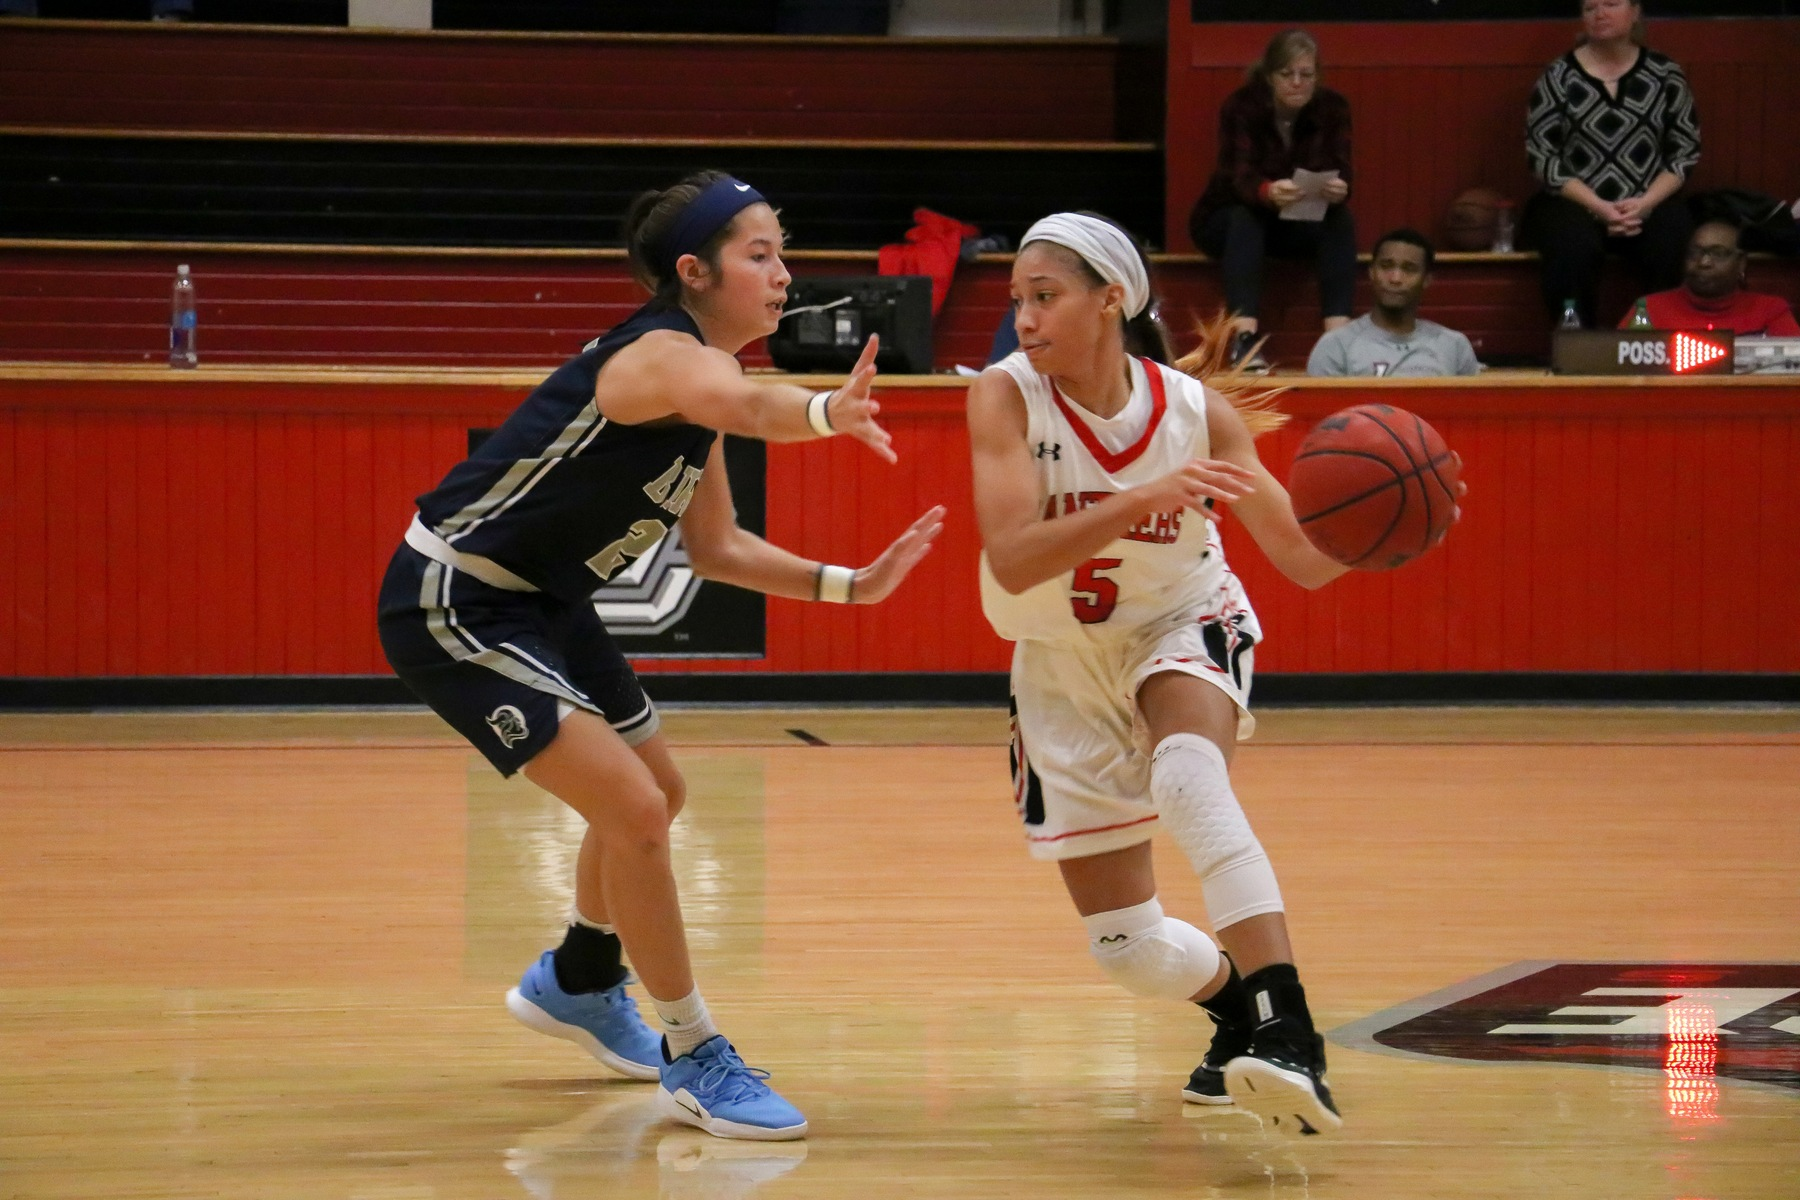 Women's Basketball: Strong final quarter carries Panthers past Berry 51-42